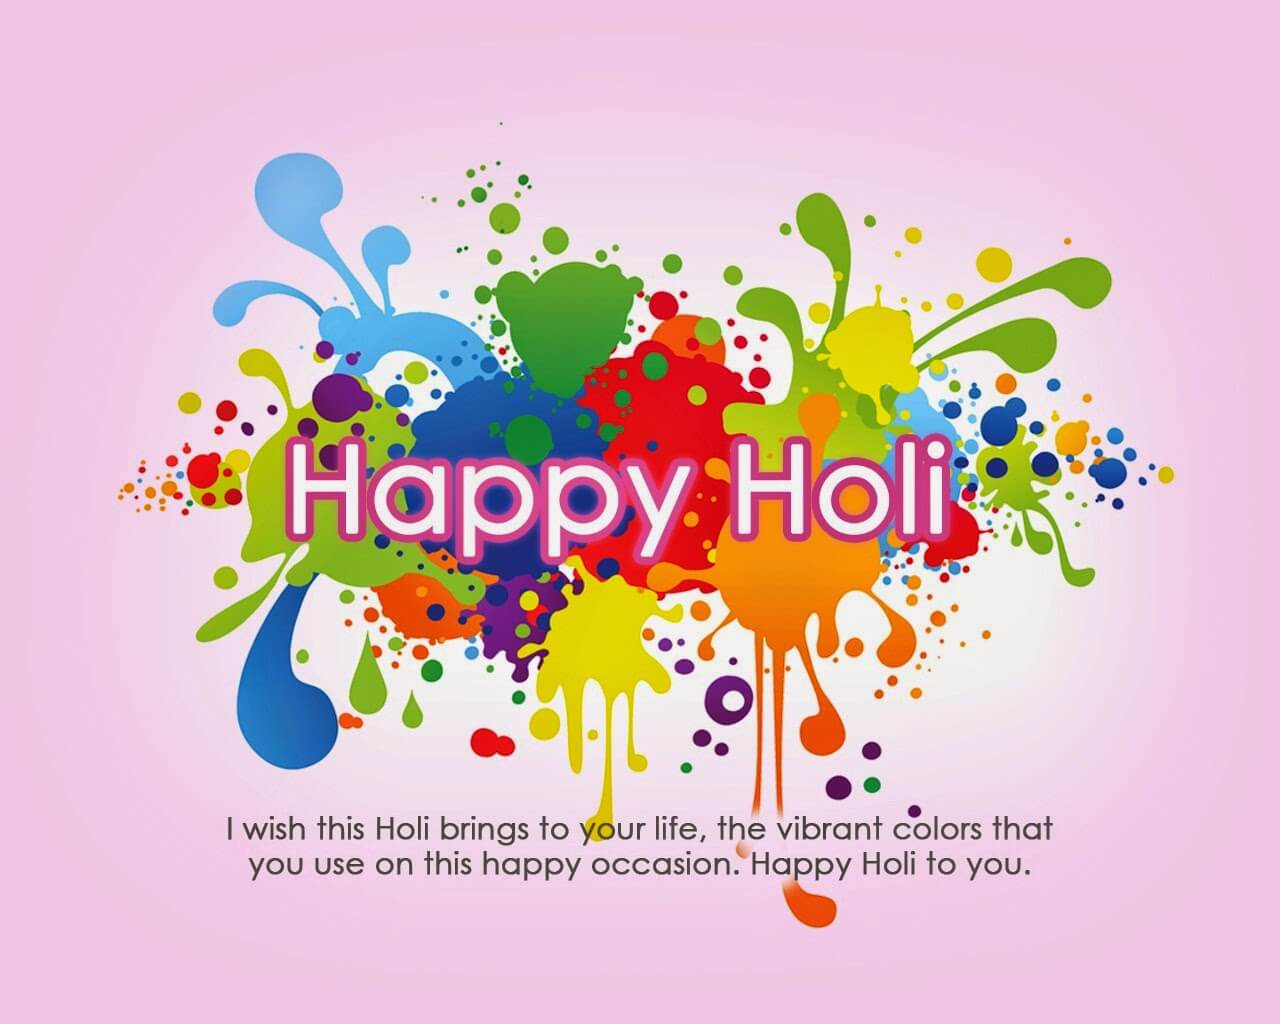 happy holi blessing images, wallpapers, greeting cards